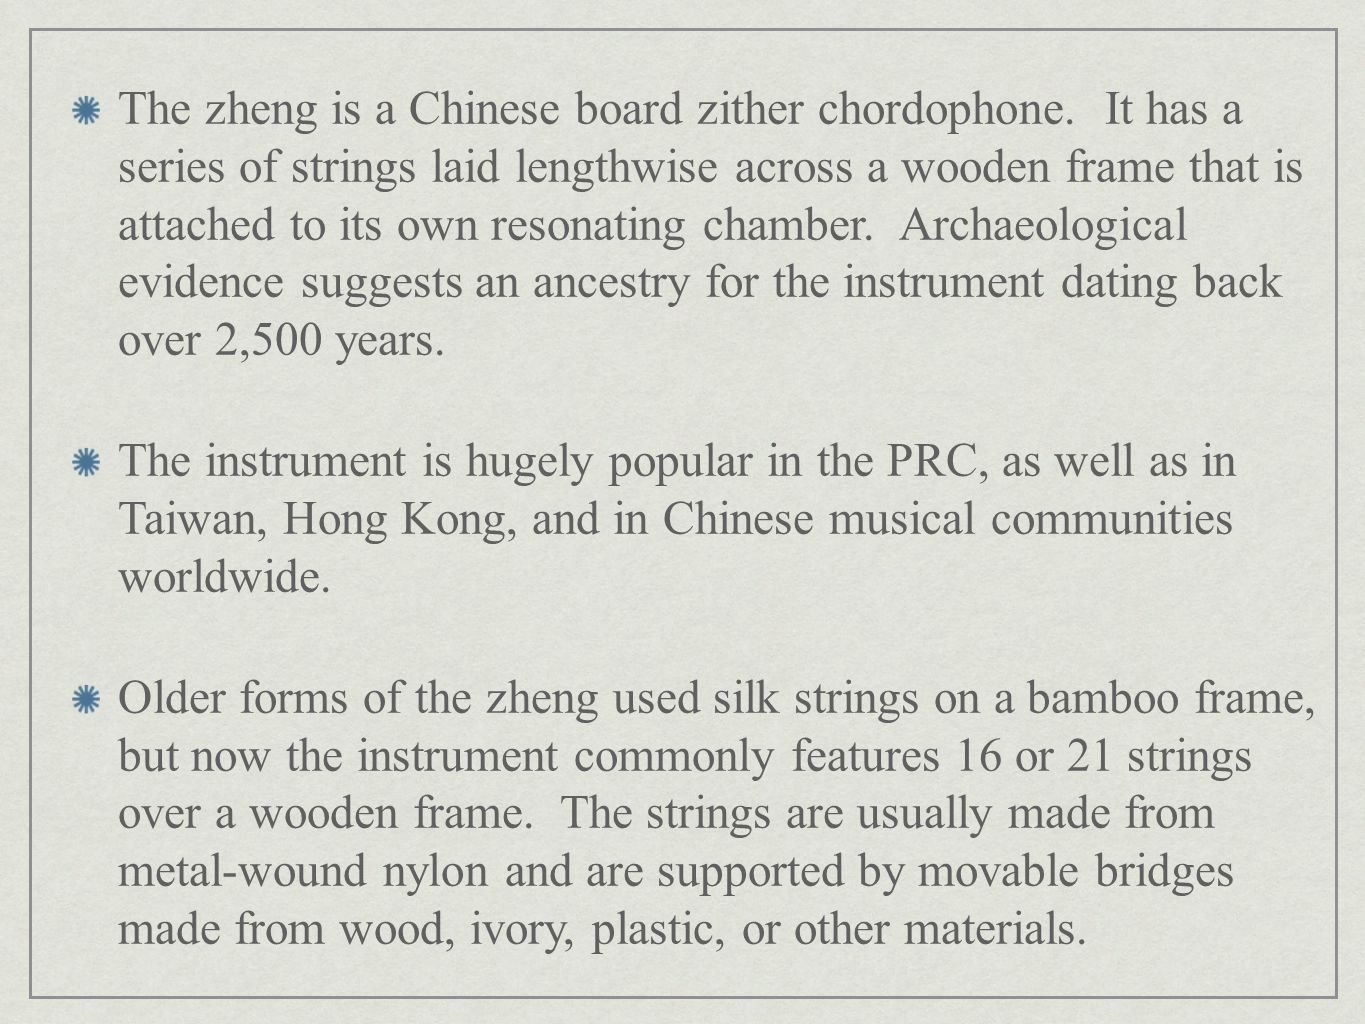 The zheng is a Chinese board zither chordophone